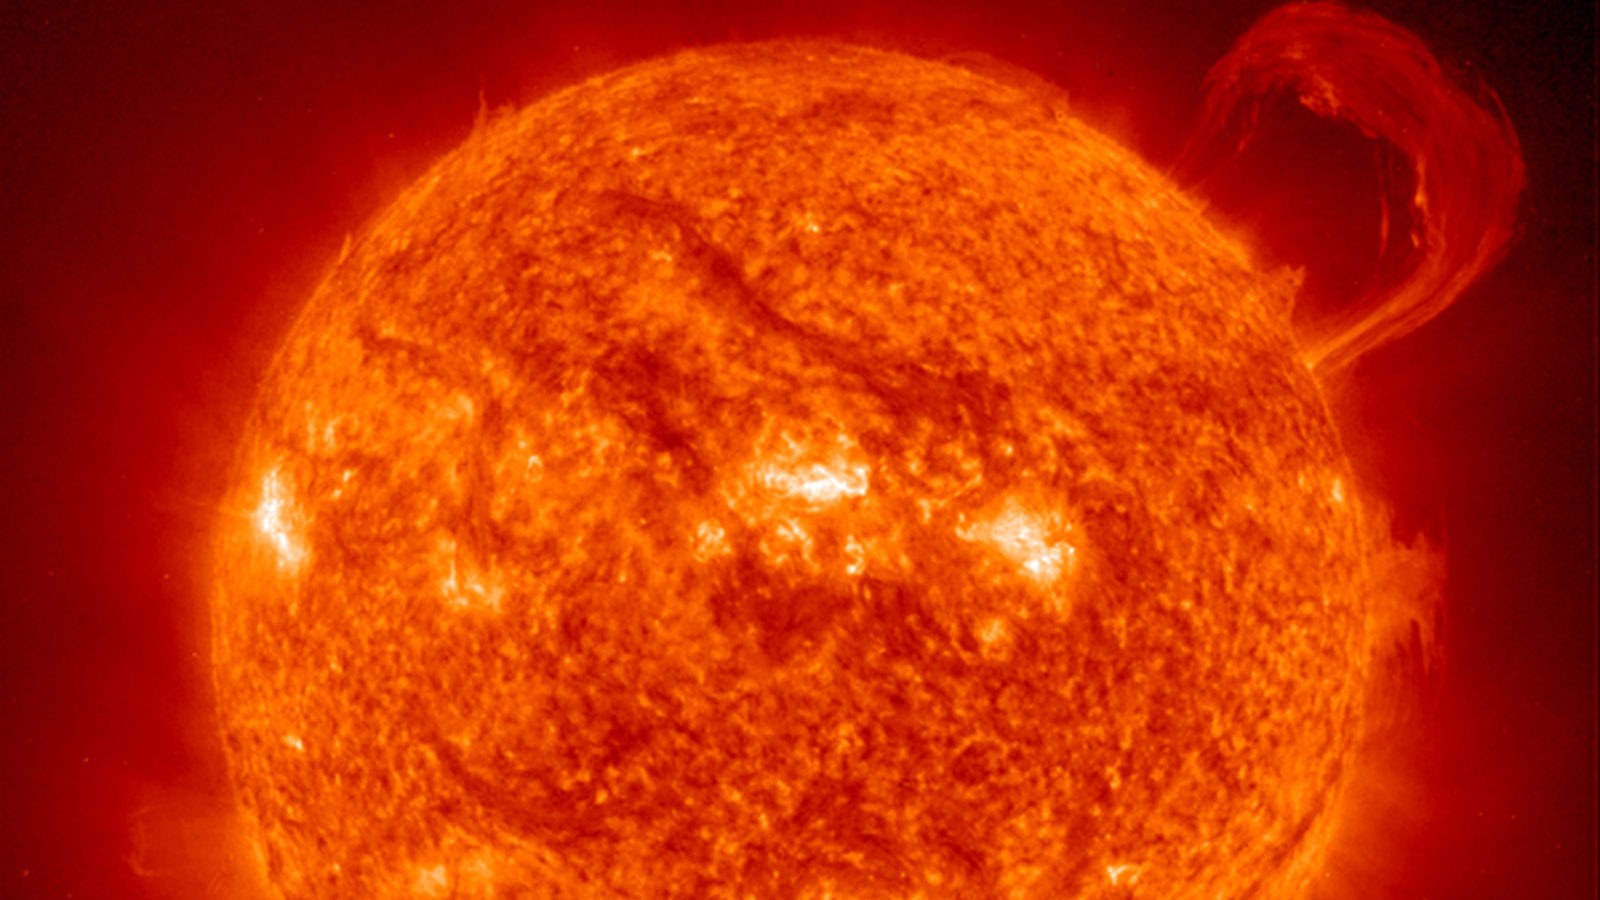 Photo of the sun